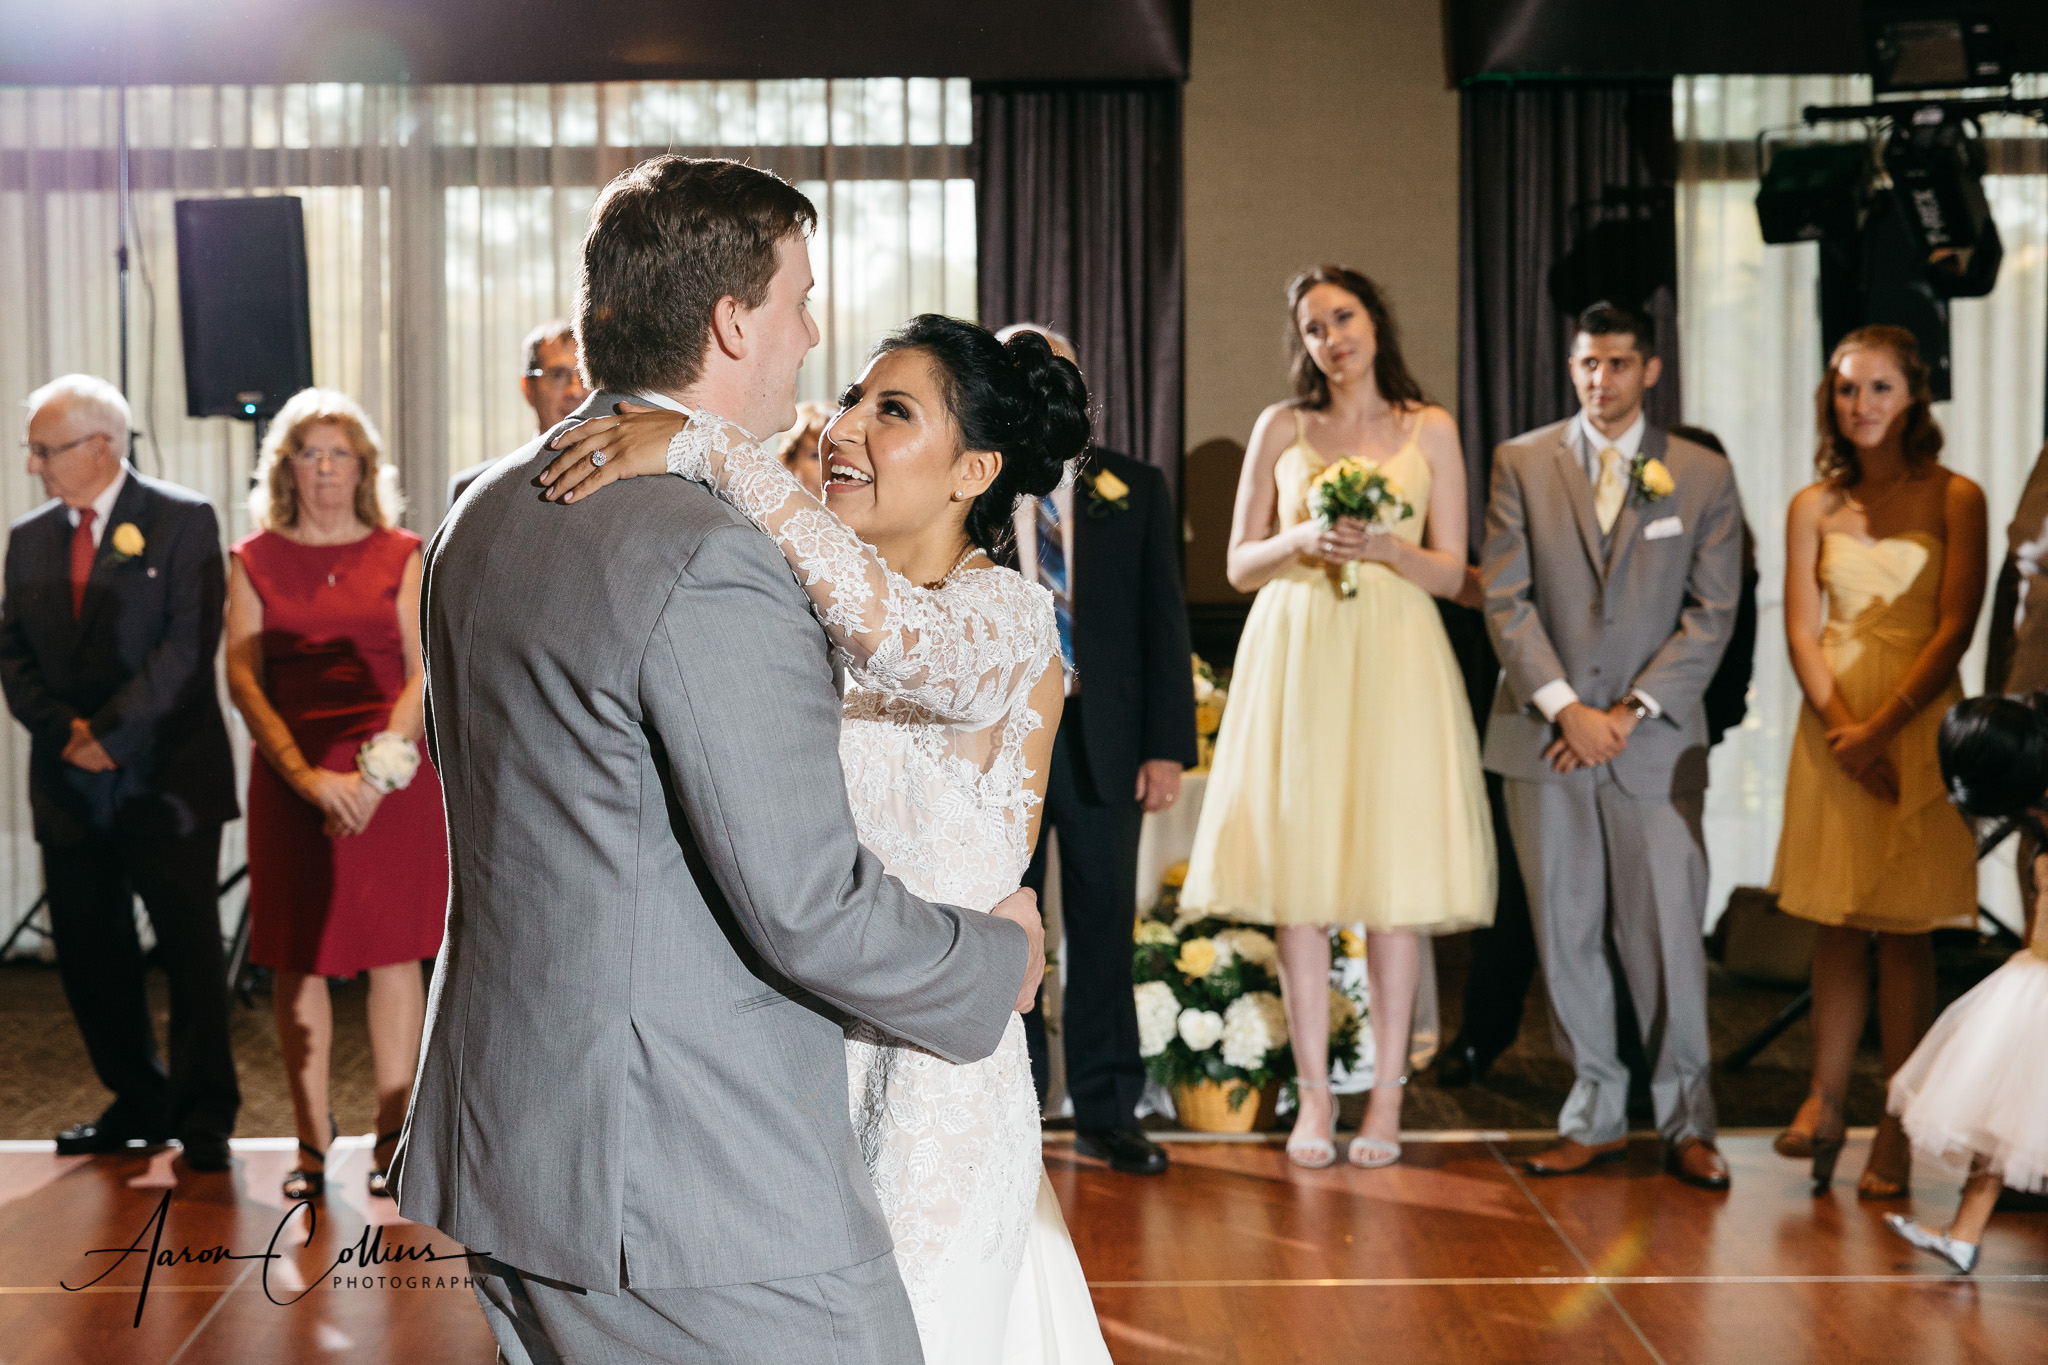 Bride and Groom's first dance at their reception at Verve in Natick MA.